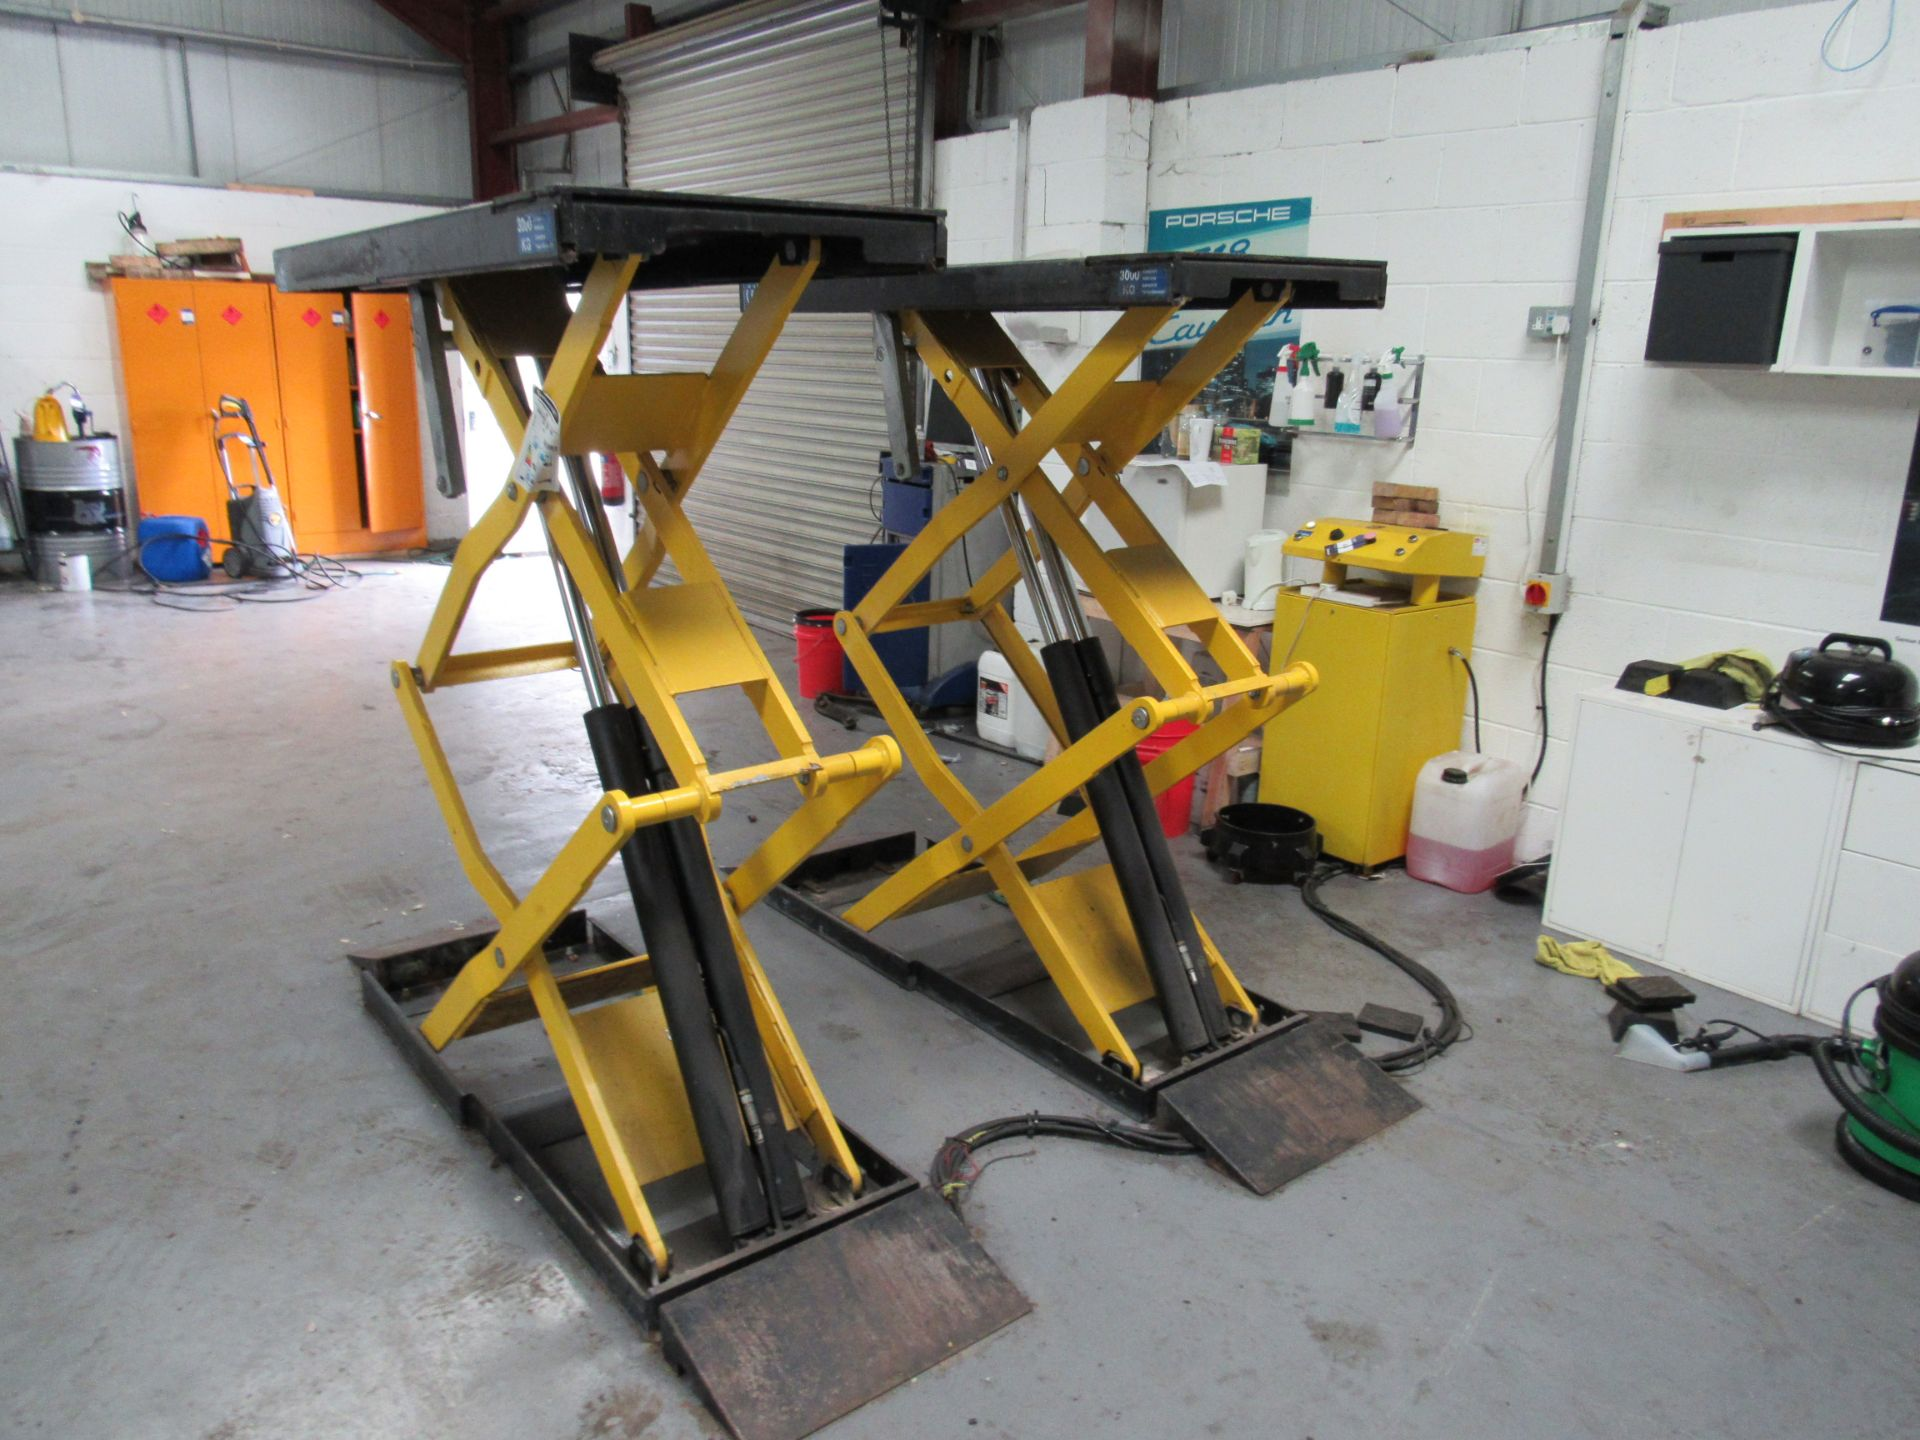 Lot 44 - Rotary Porsche 3000kg Hydraulic Scissor Lift, Serial Number 5405274 (Located at Unit 11)